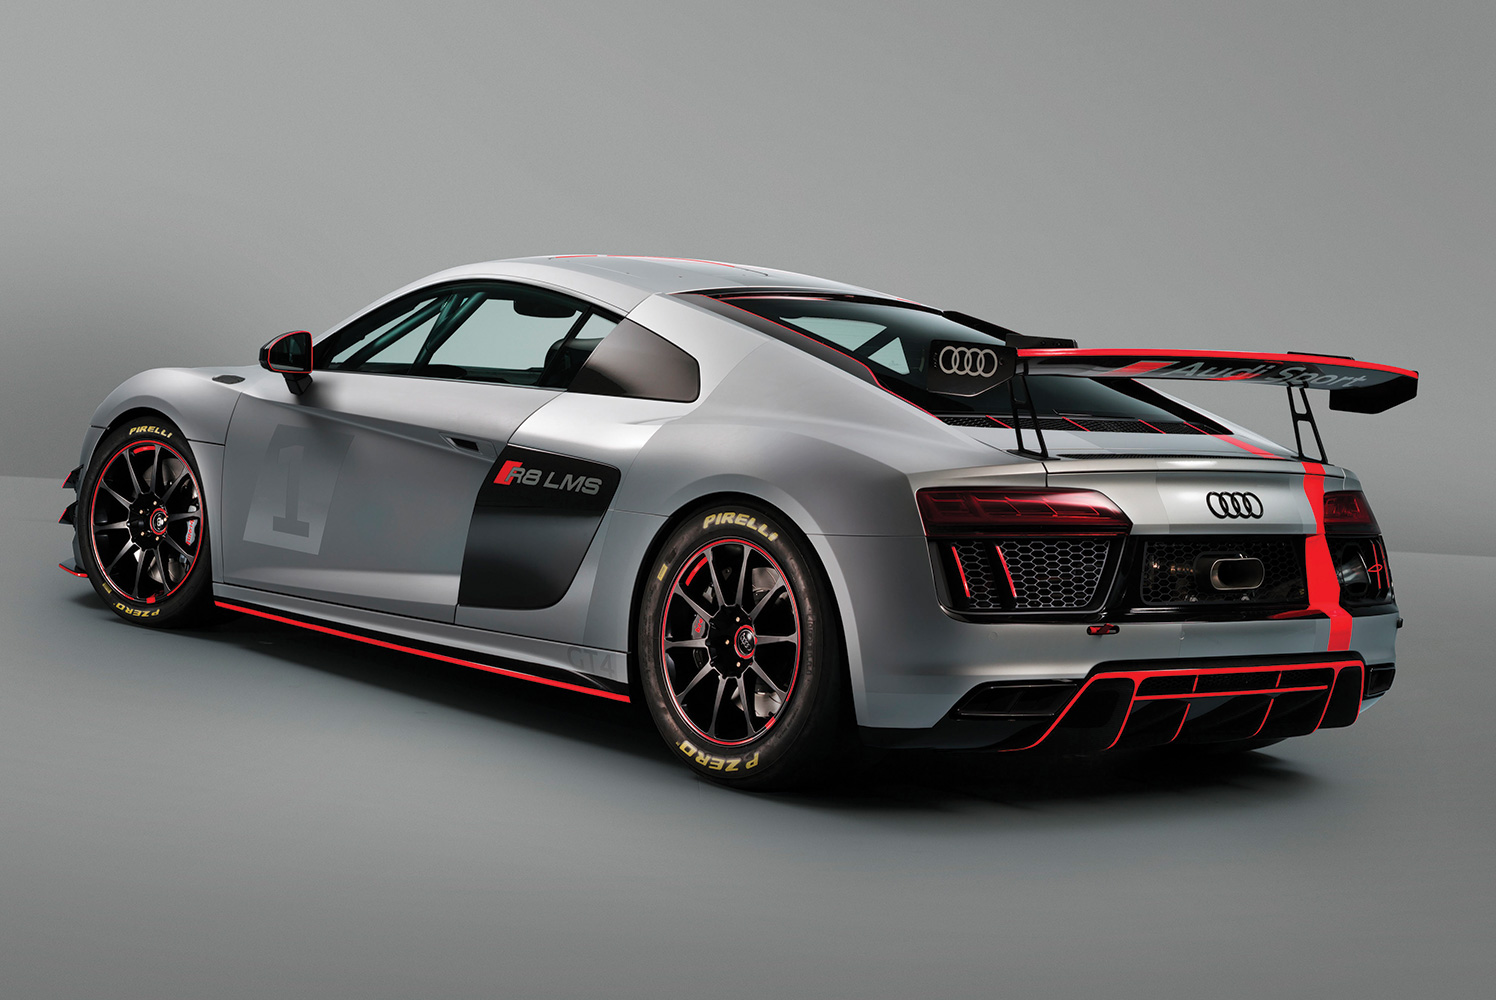 New Audi R8 LMS Unveiled